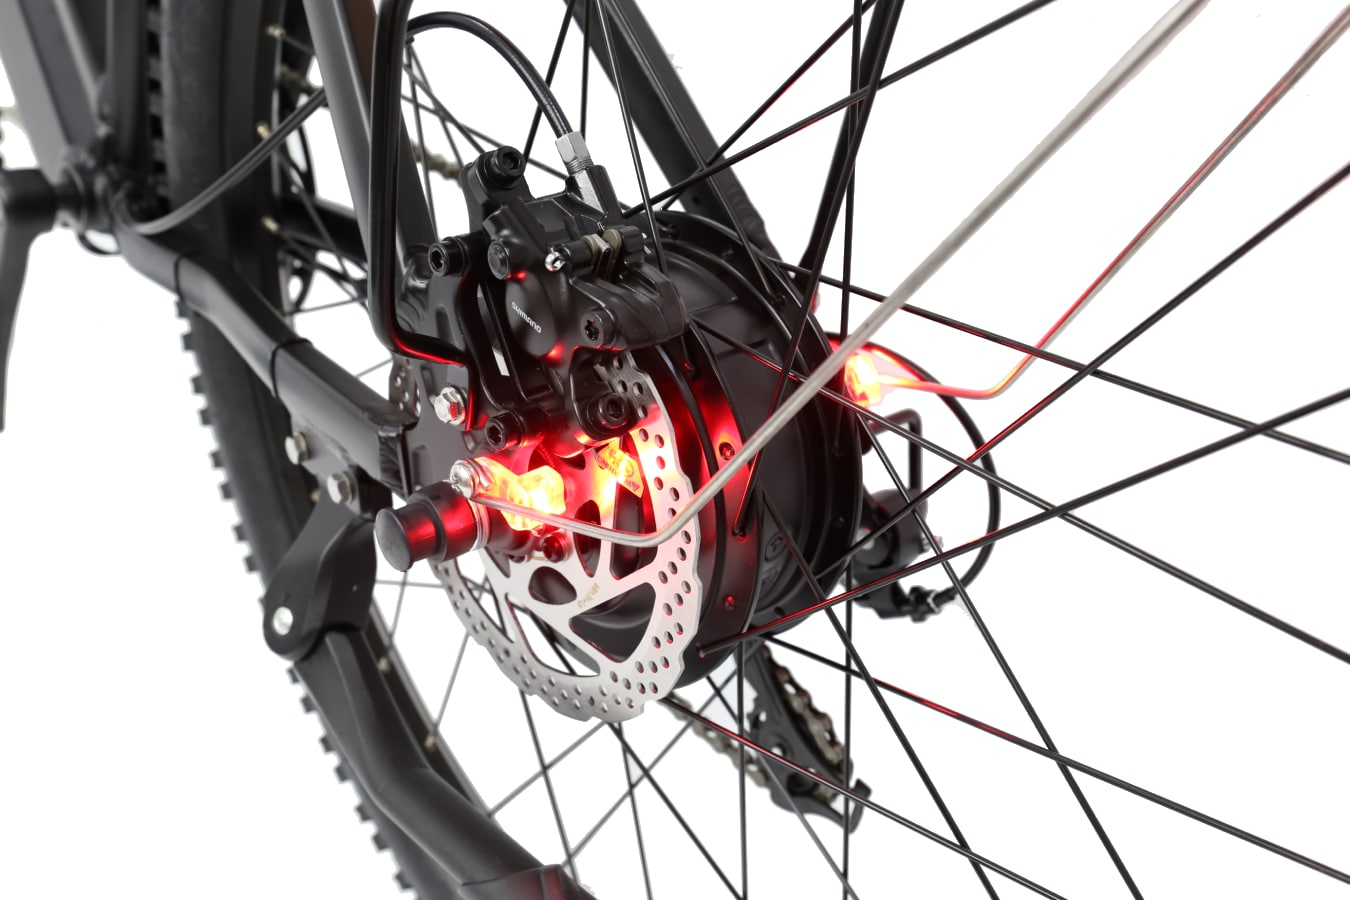 Weave Sport rear brake Light and Stand